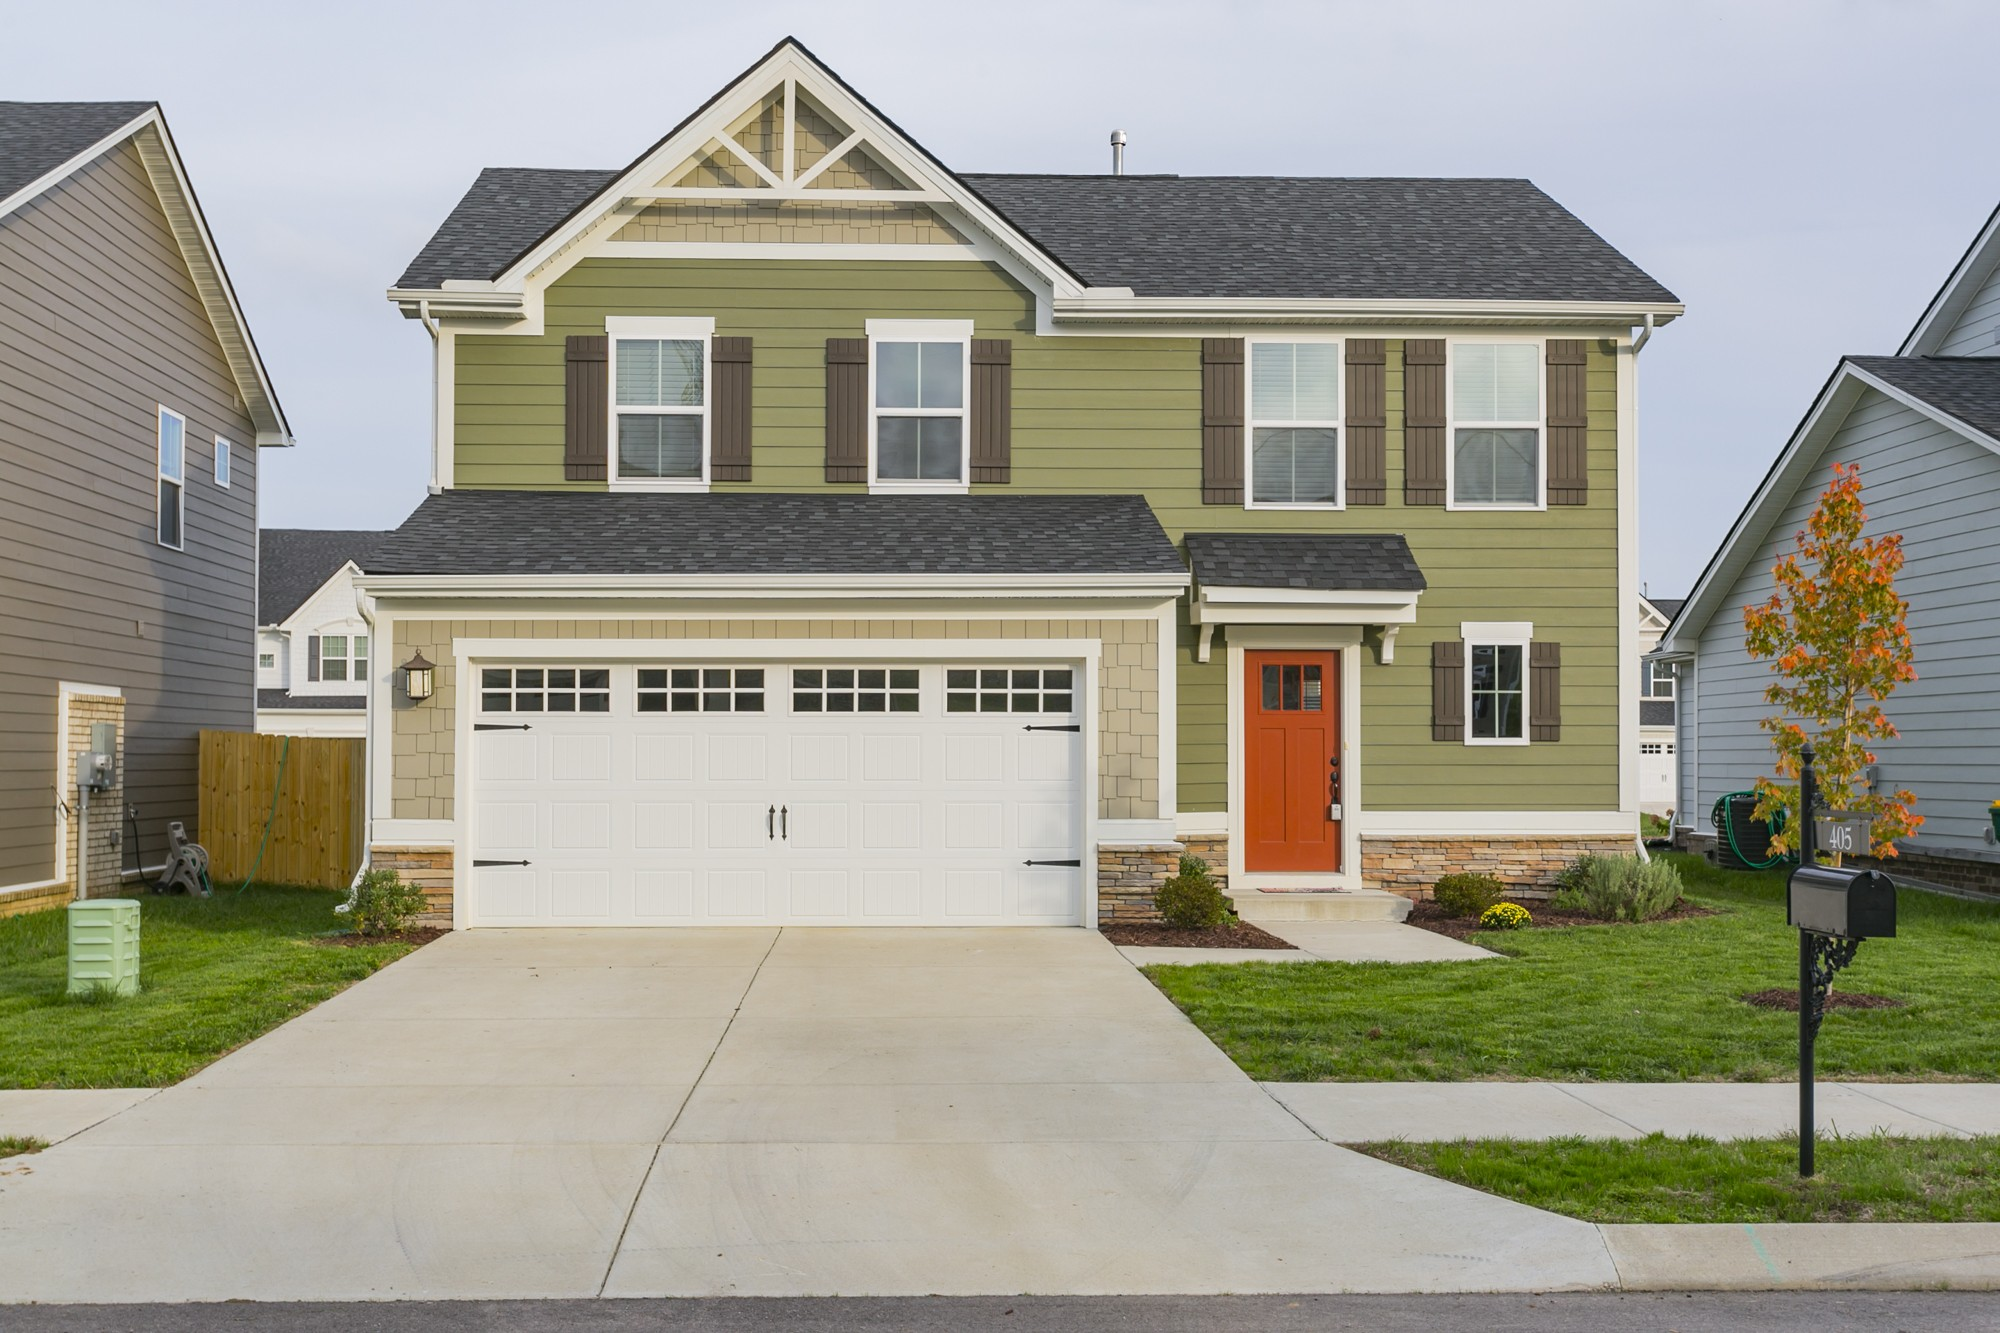 405 Heroit Dr, Spring Hill, Tennessee